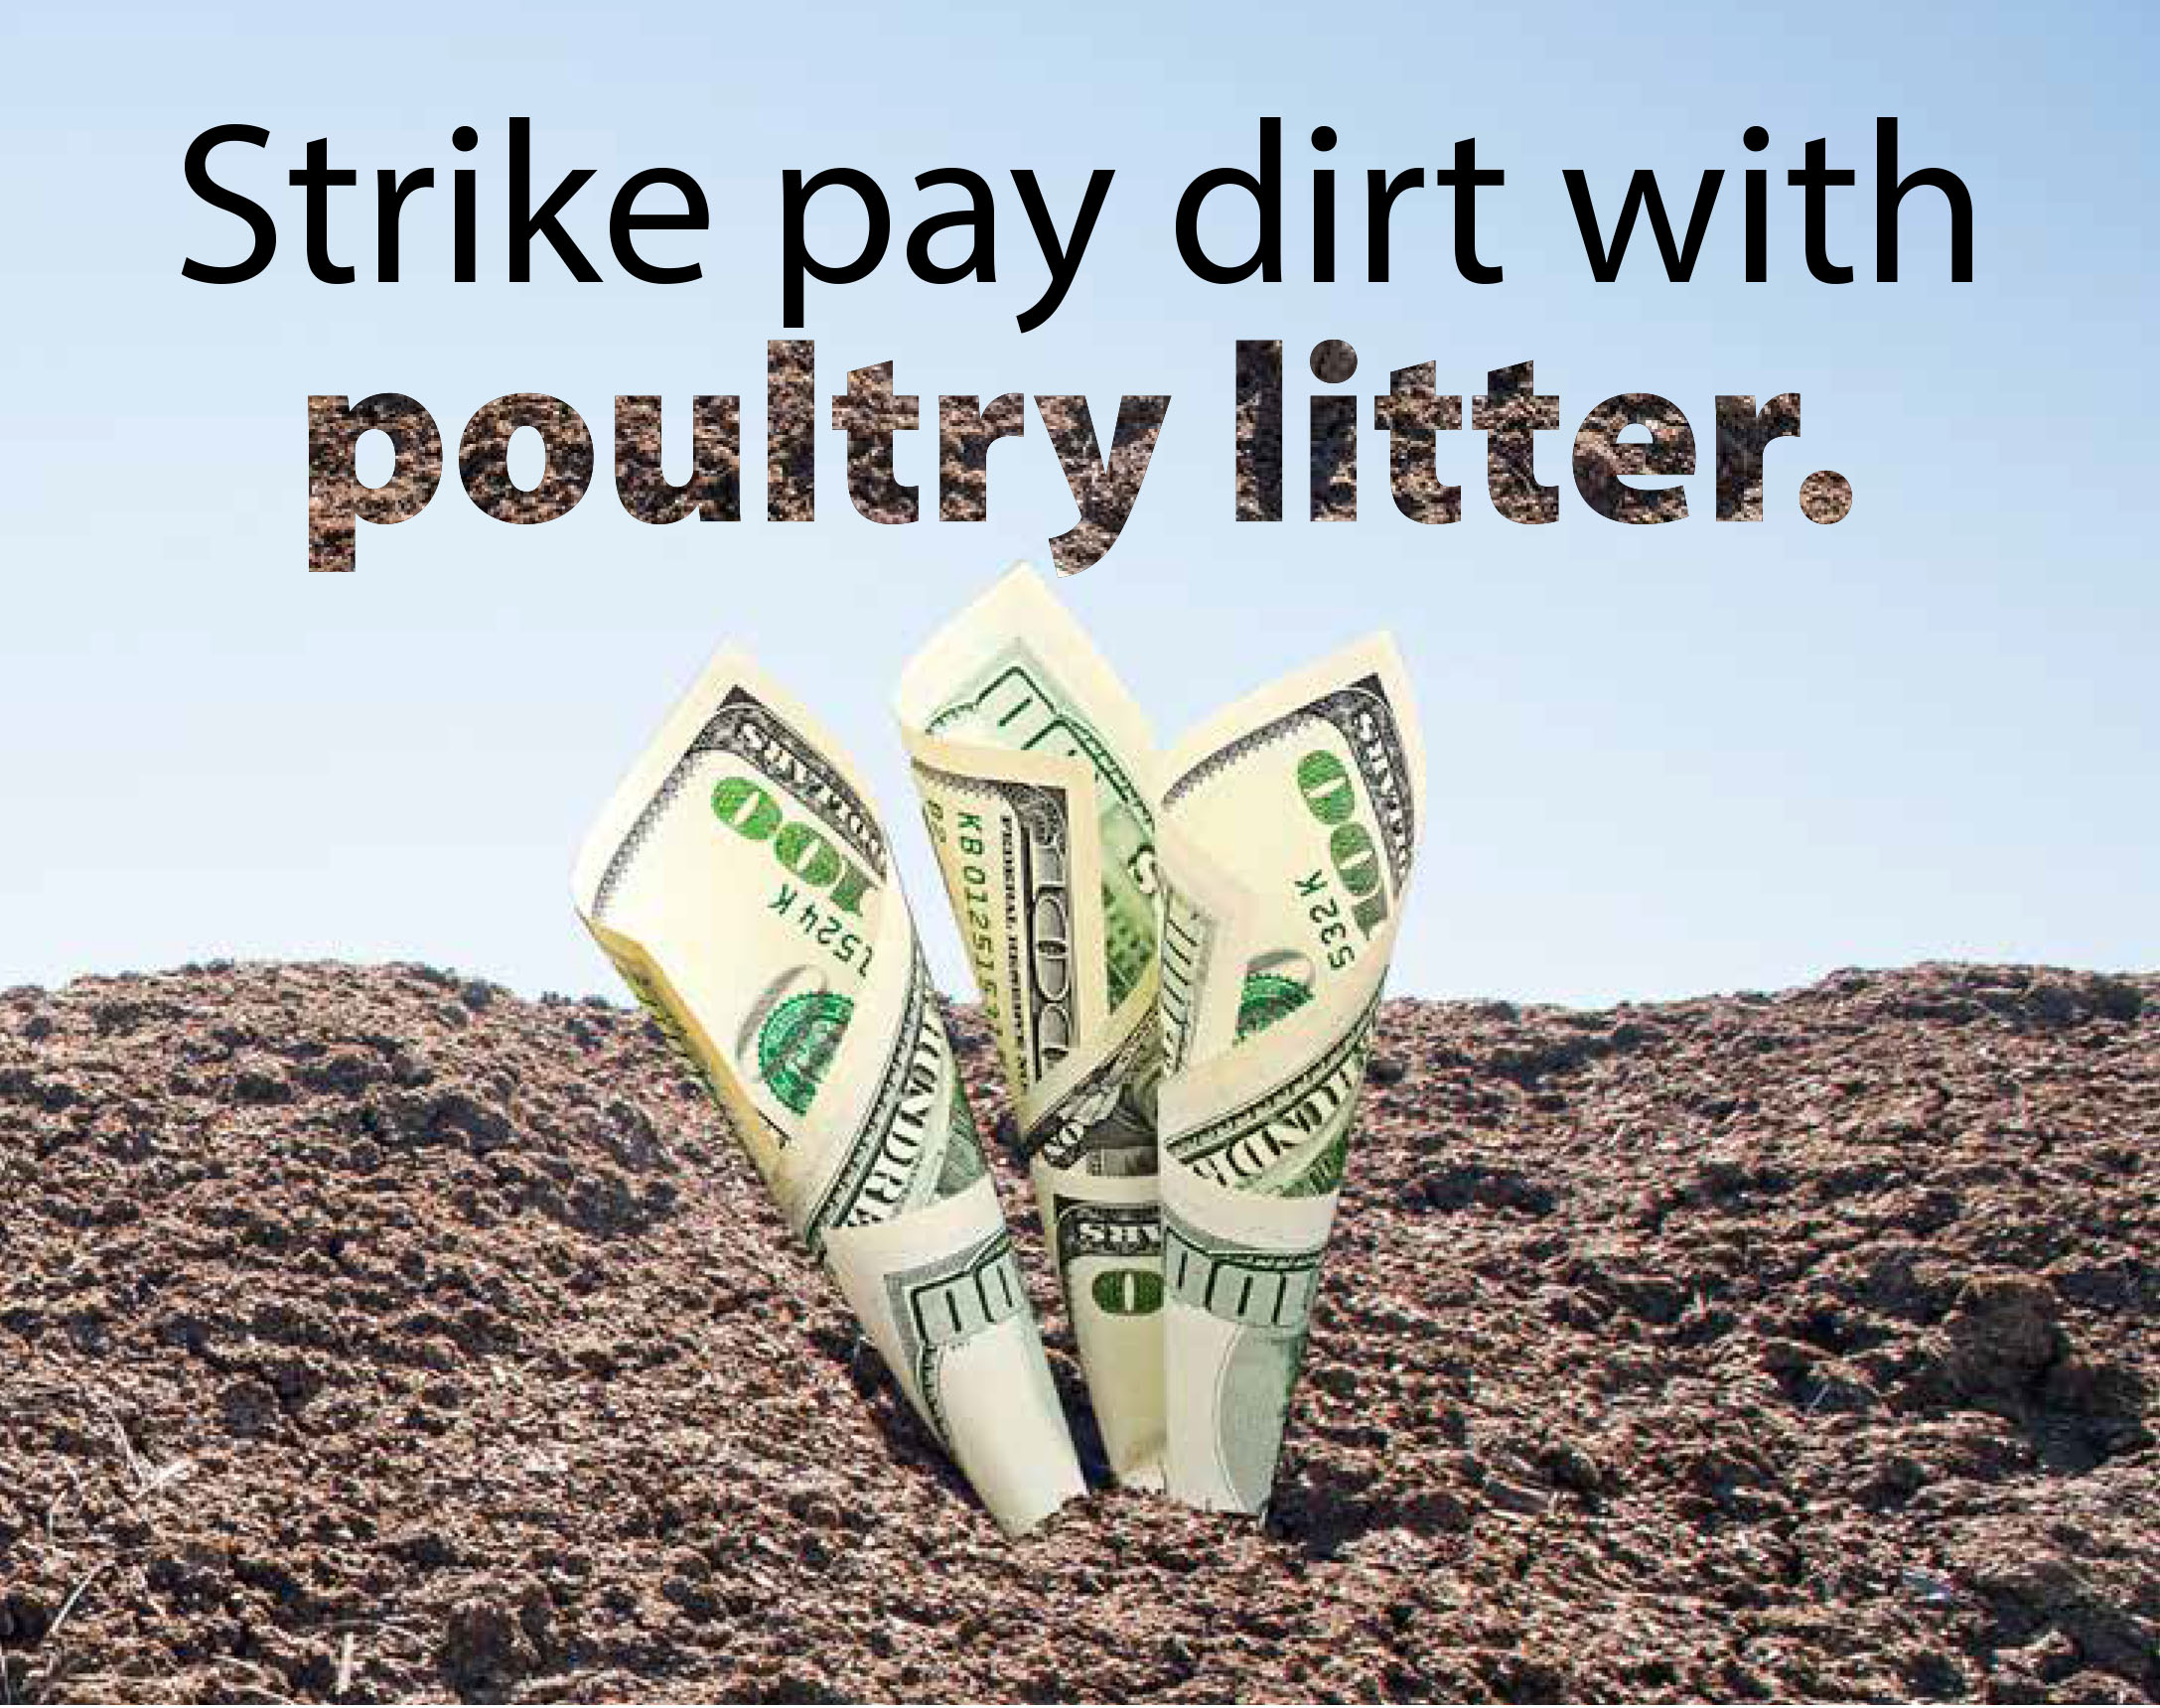 strike pay dirt with manure